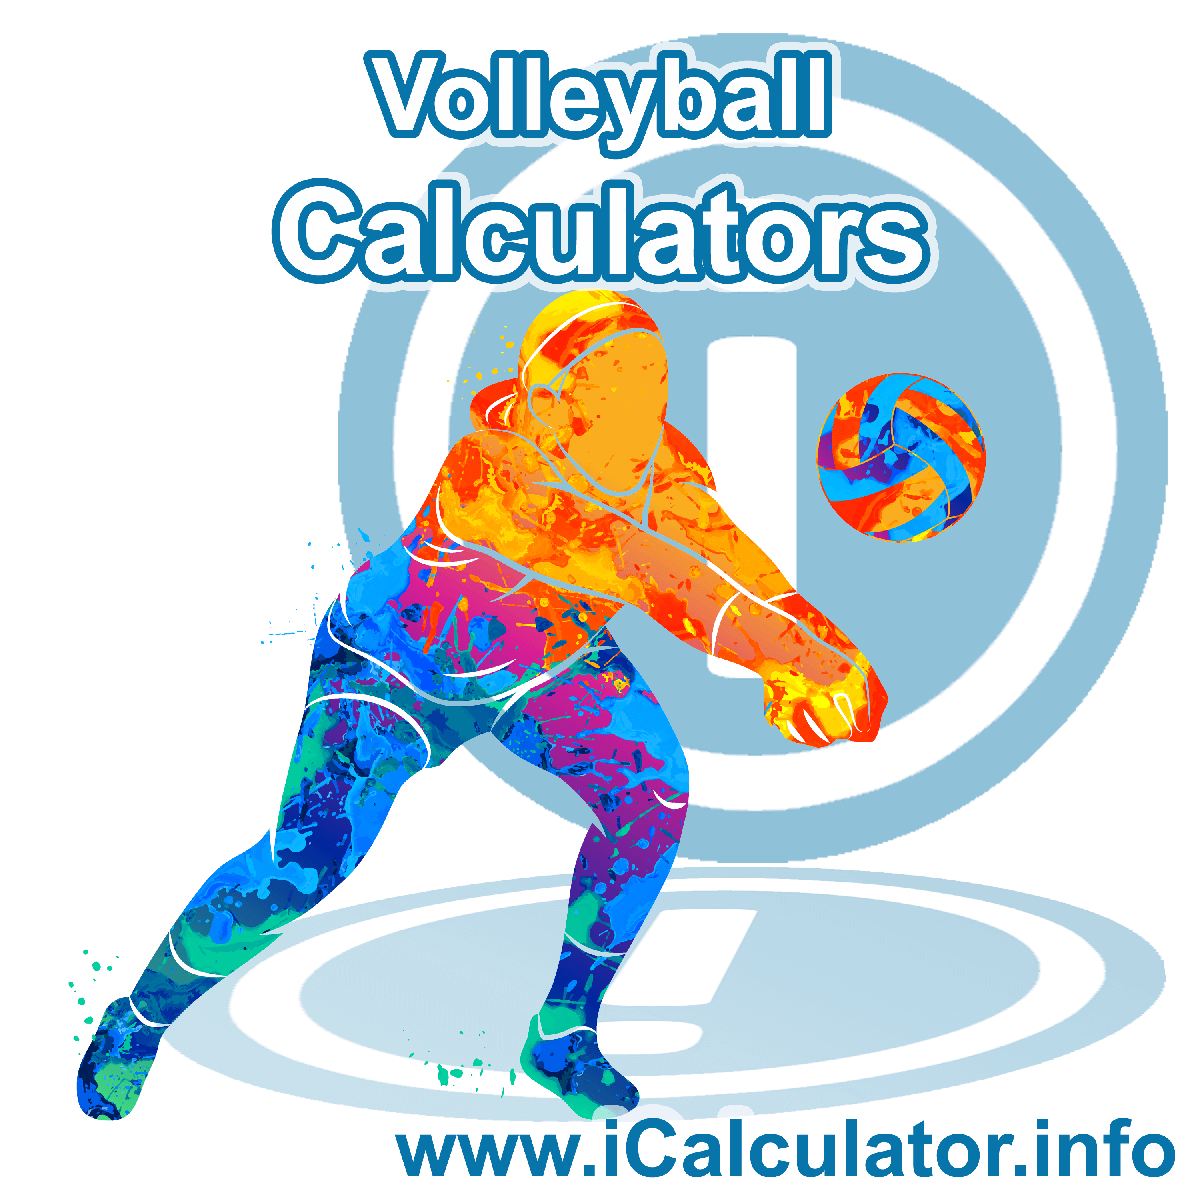 Volleyball Calculator. This image shows an Volleyball player playing volleyball - by iCalculator